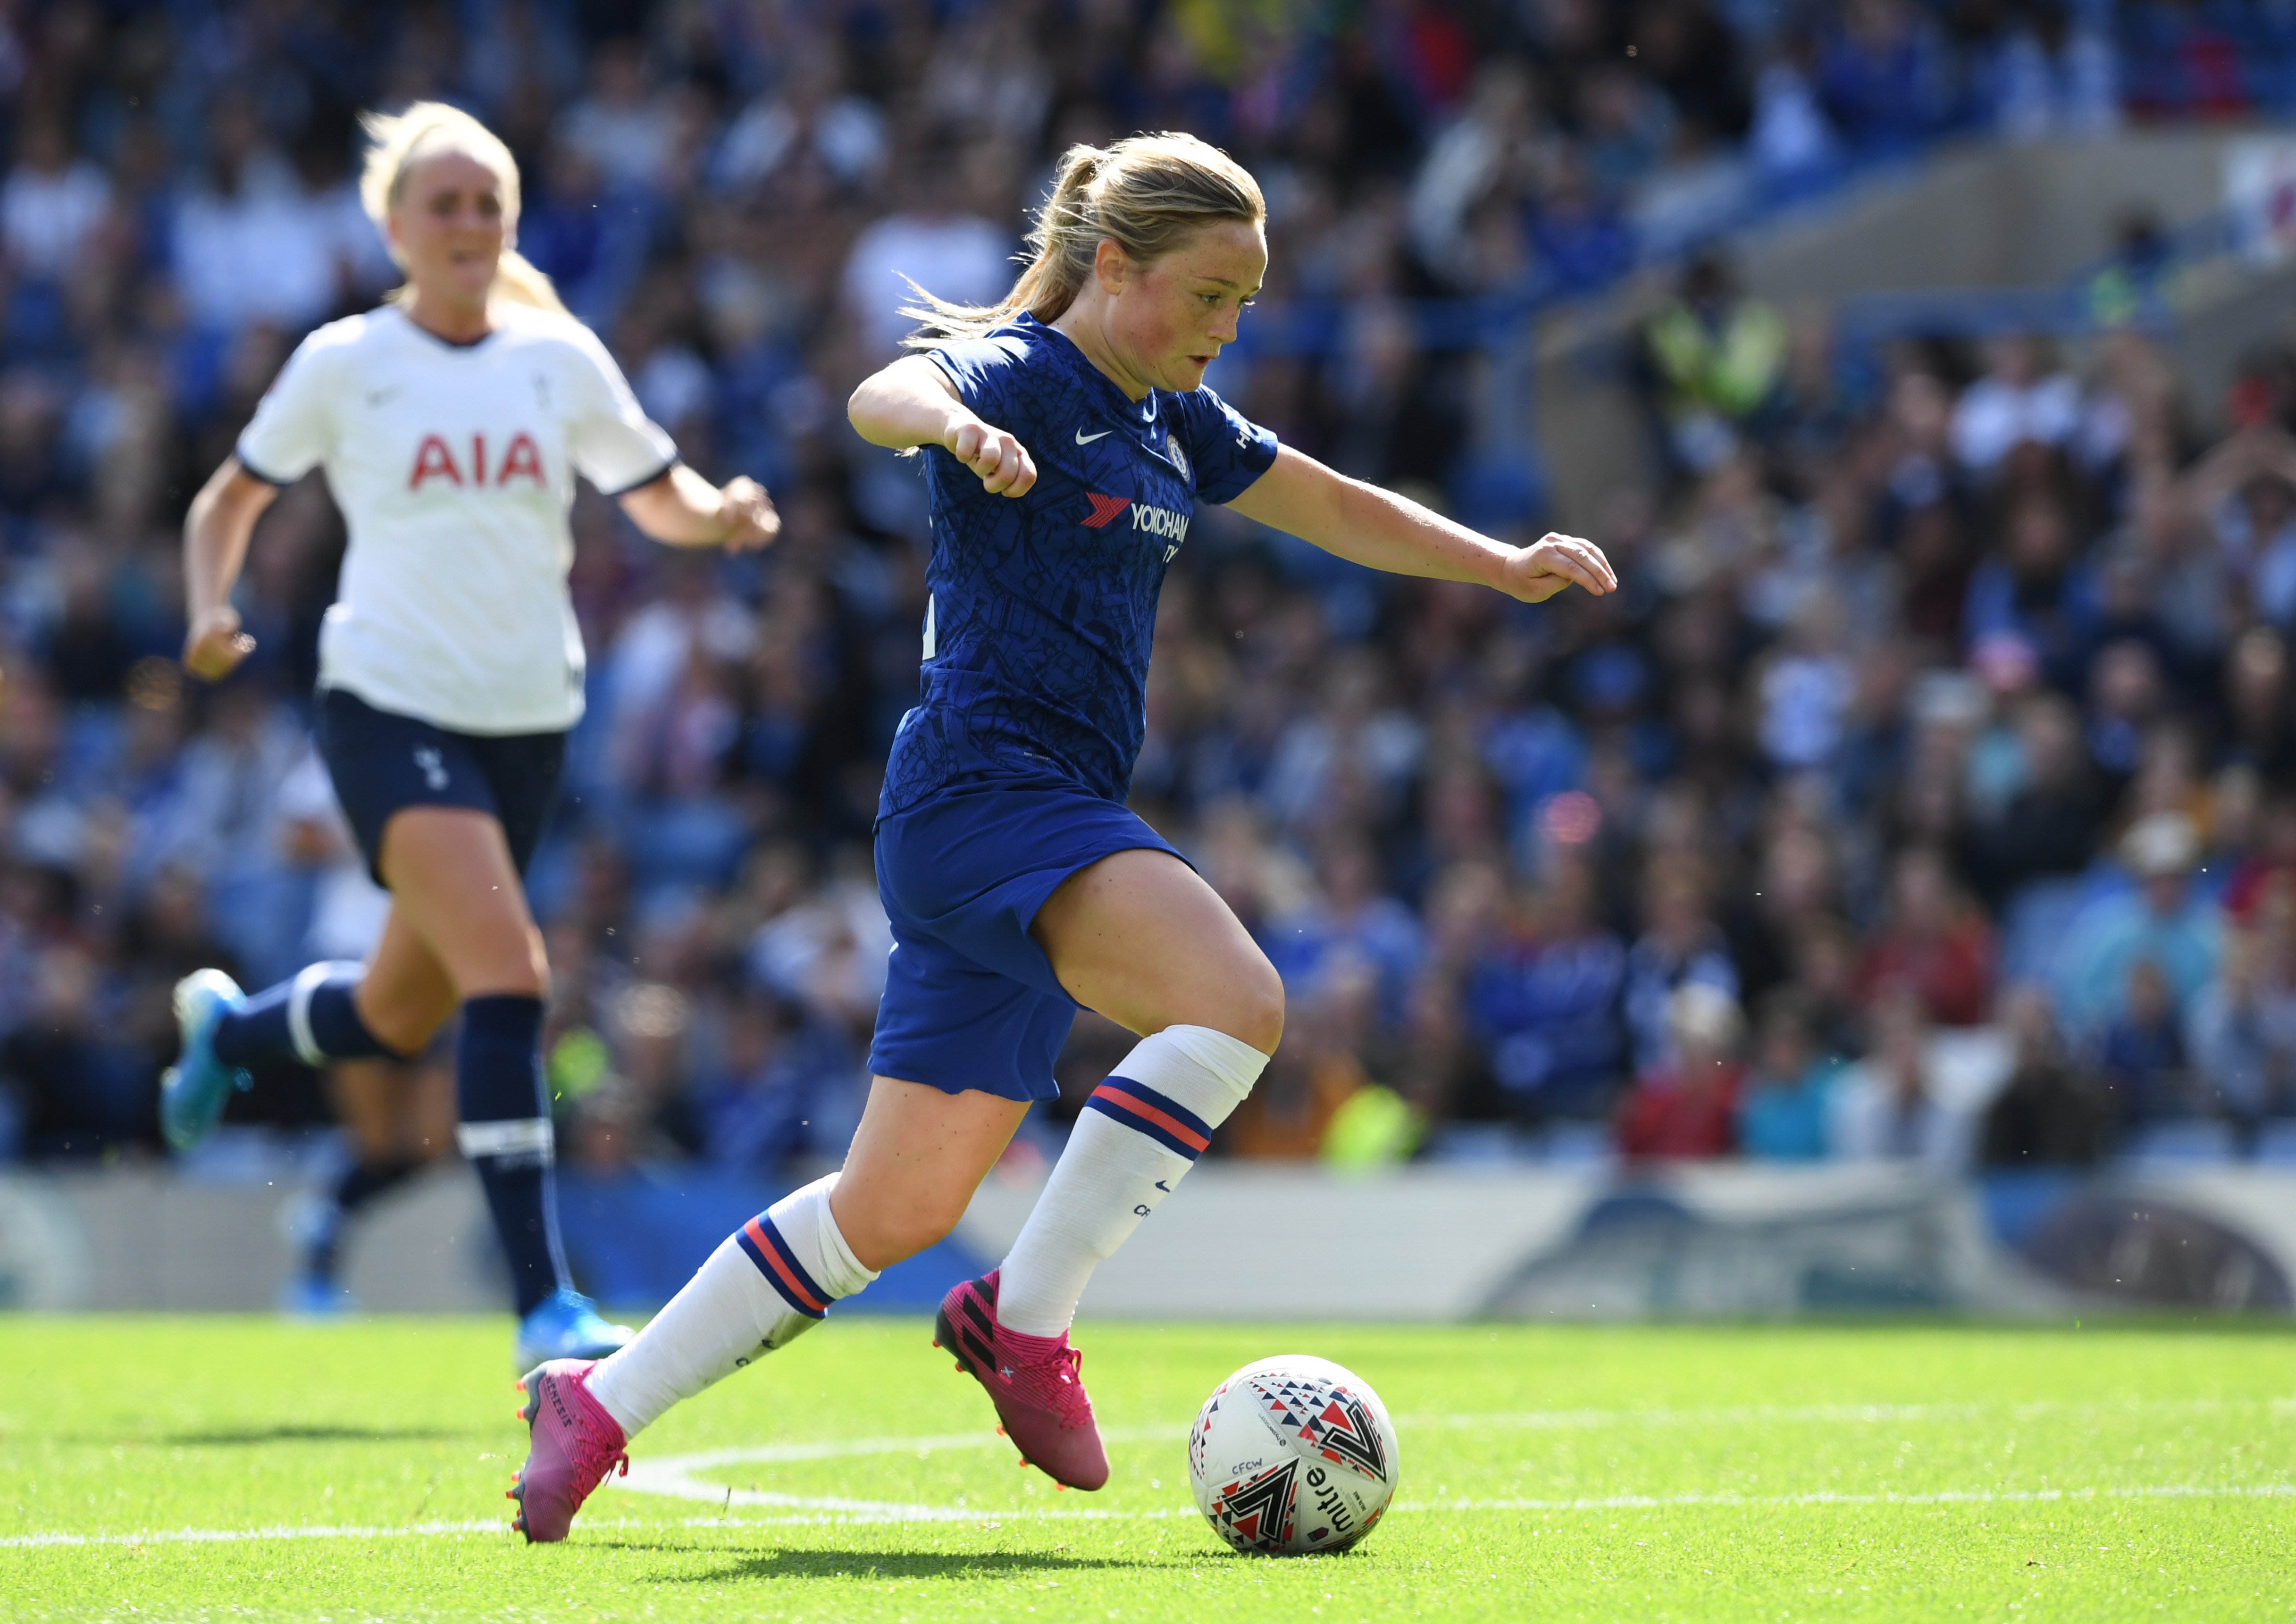 Chelsea FC Women vs. Brighton & Hove Albion Women, FA WSL; Preview, team news, how to watch